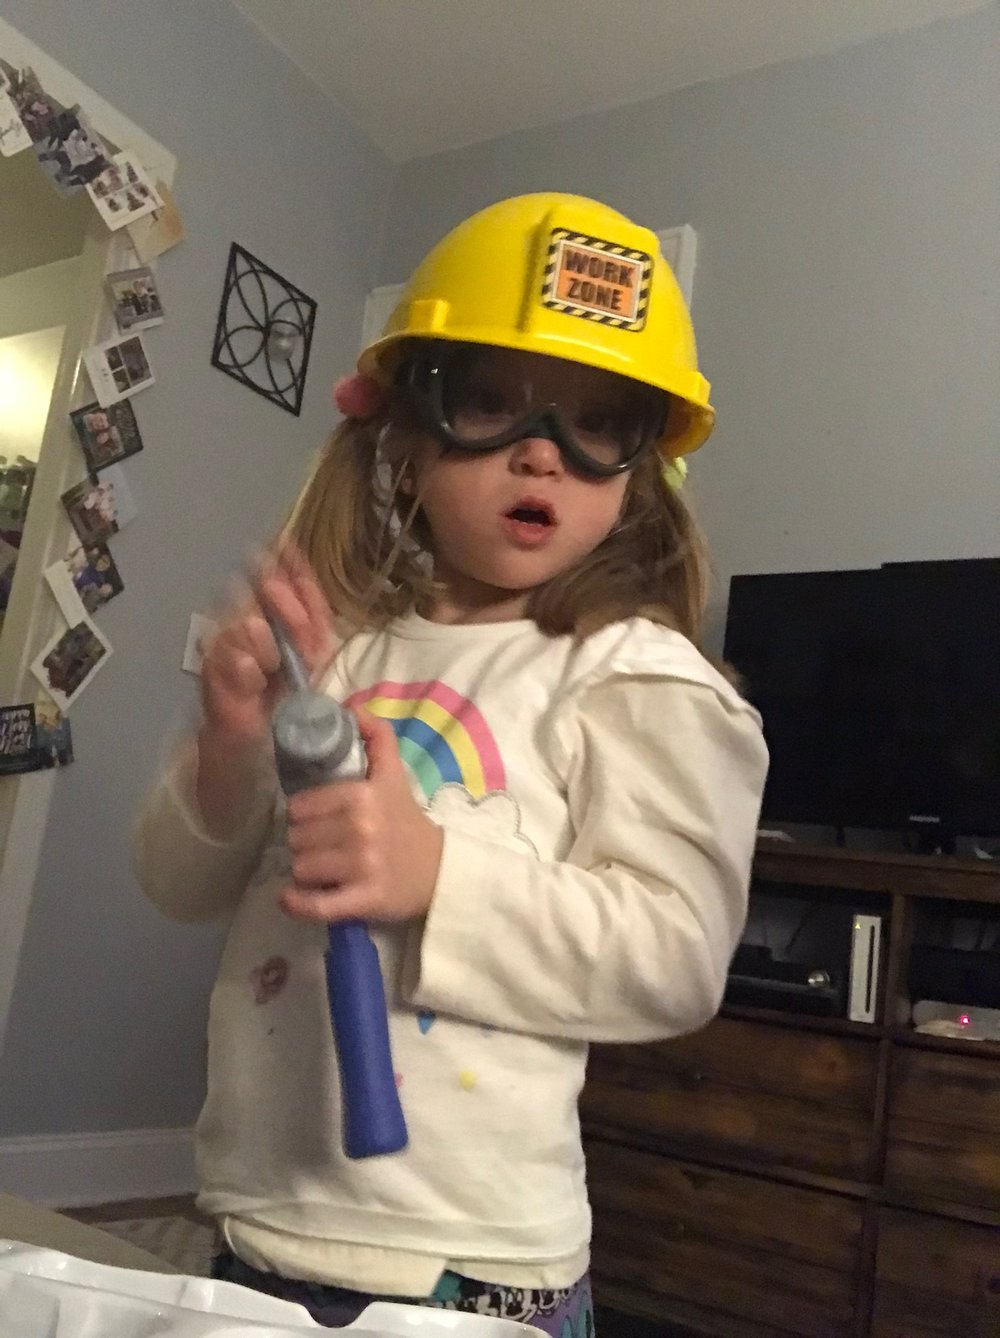 Felicity gave Lucie a tool set as a gift, letting her know she's so excited that Lucie is her big sister. Lucie has been using the tools all around the apartment to get things ready for when Felicity can come home.